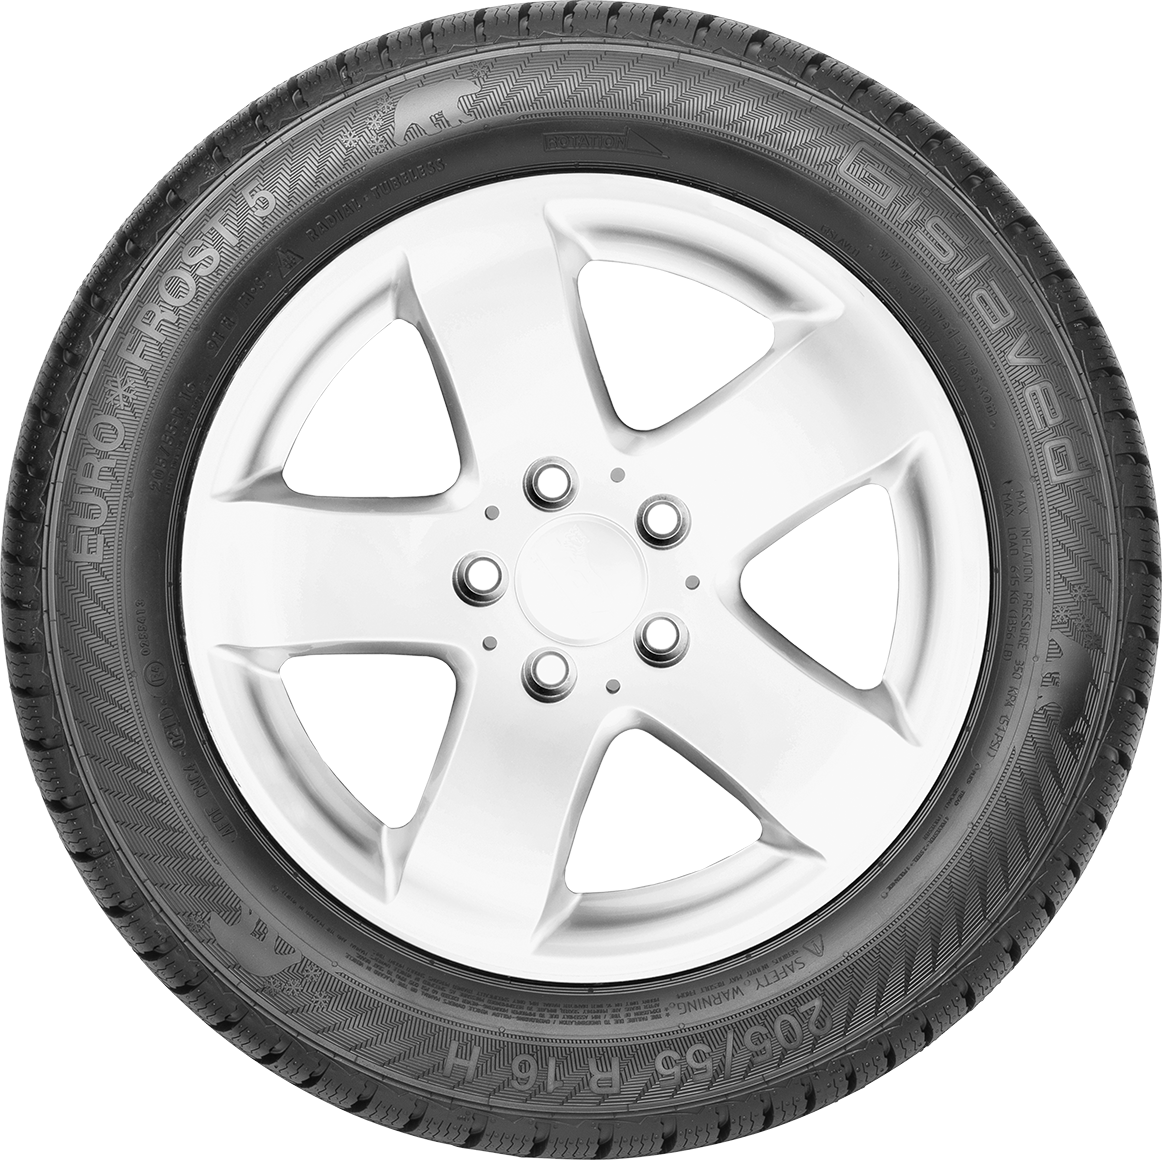 Euro Frost 5 The Winter Tyre For Your Car Amp Suv With Grip On Snow Amp Ice Gislaved